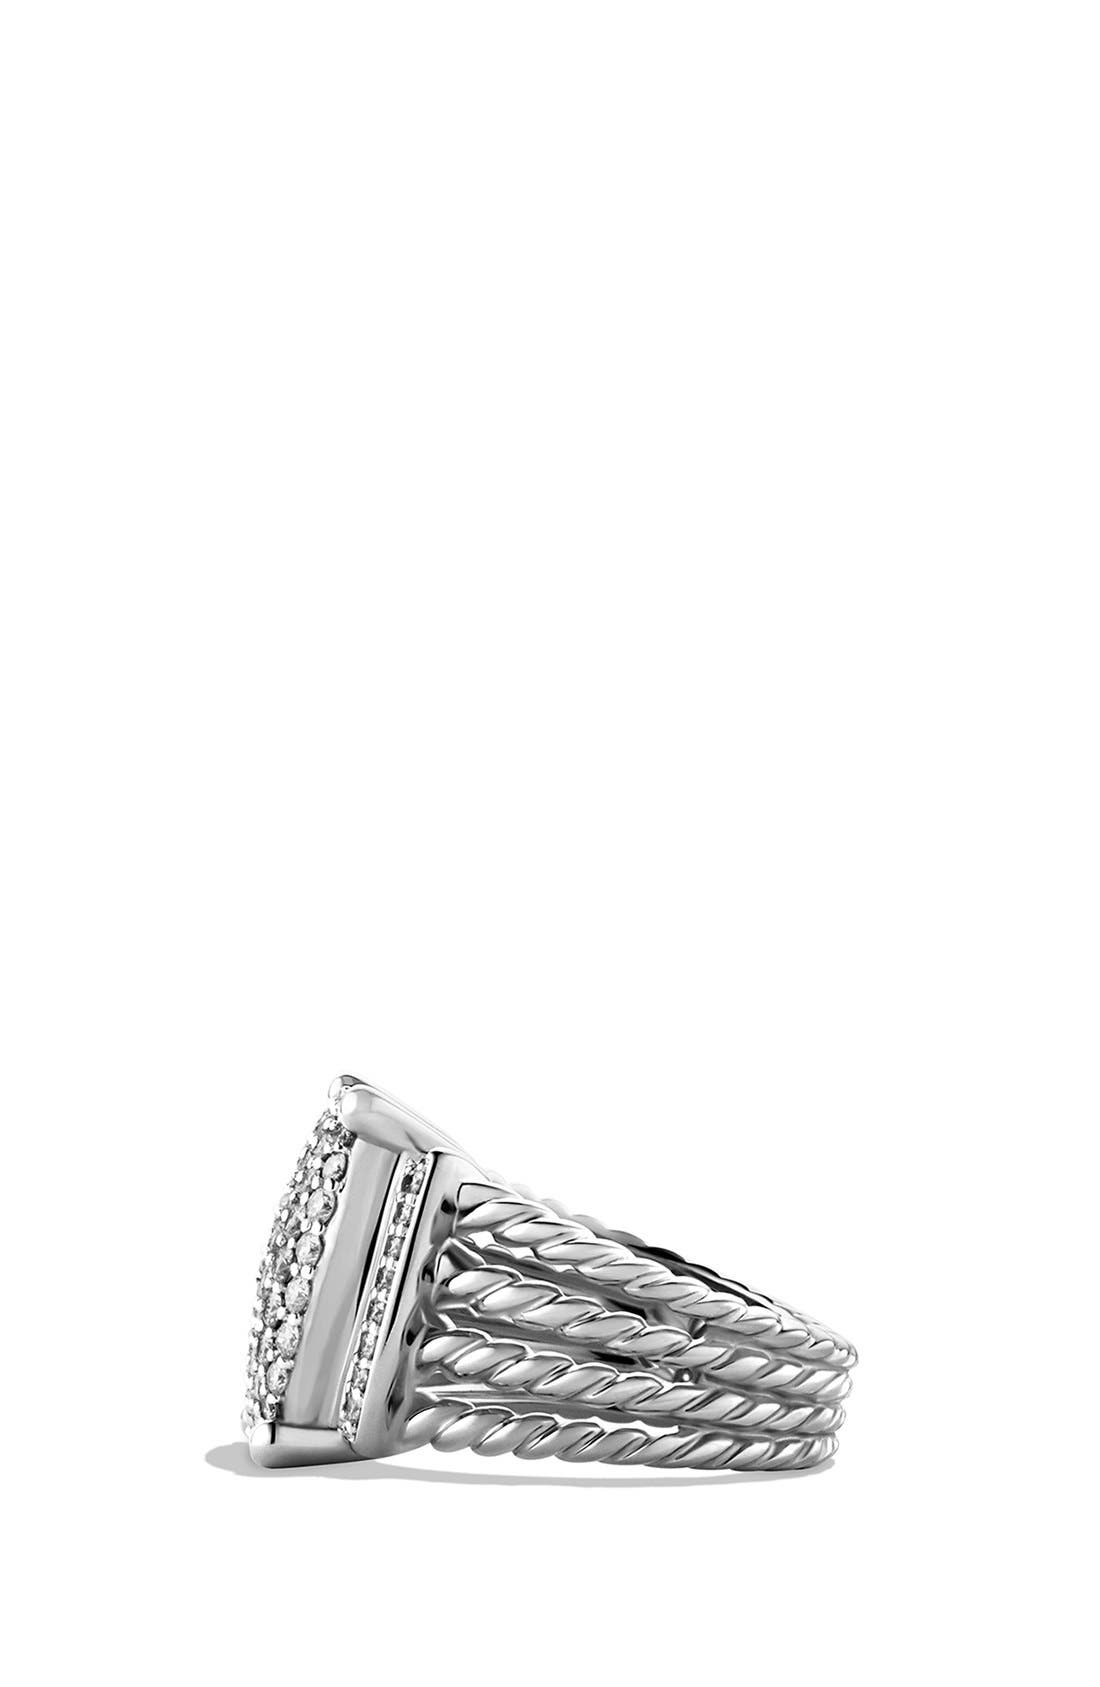 'Wheaton' Ring with Diamonds,                             Alternate thumbnail 2, color,                             DIAMOND